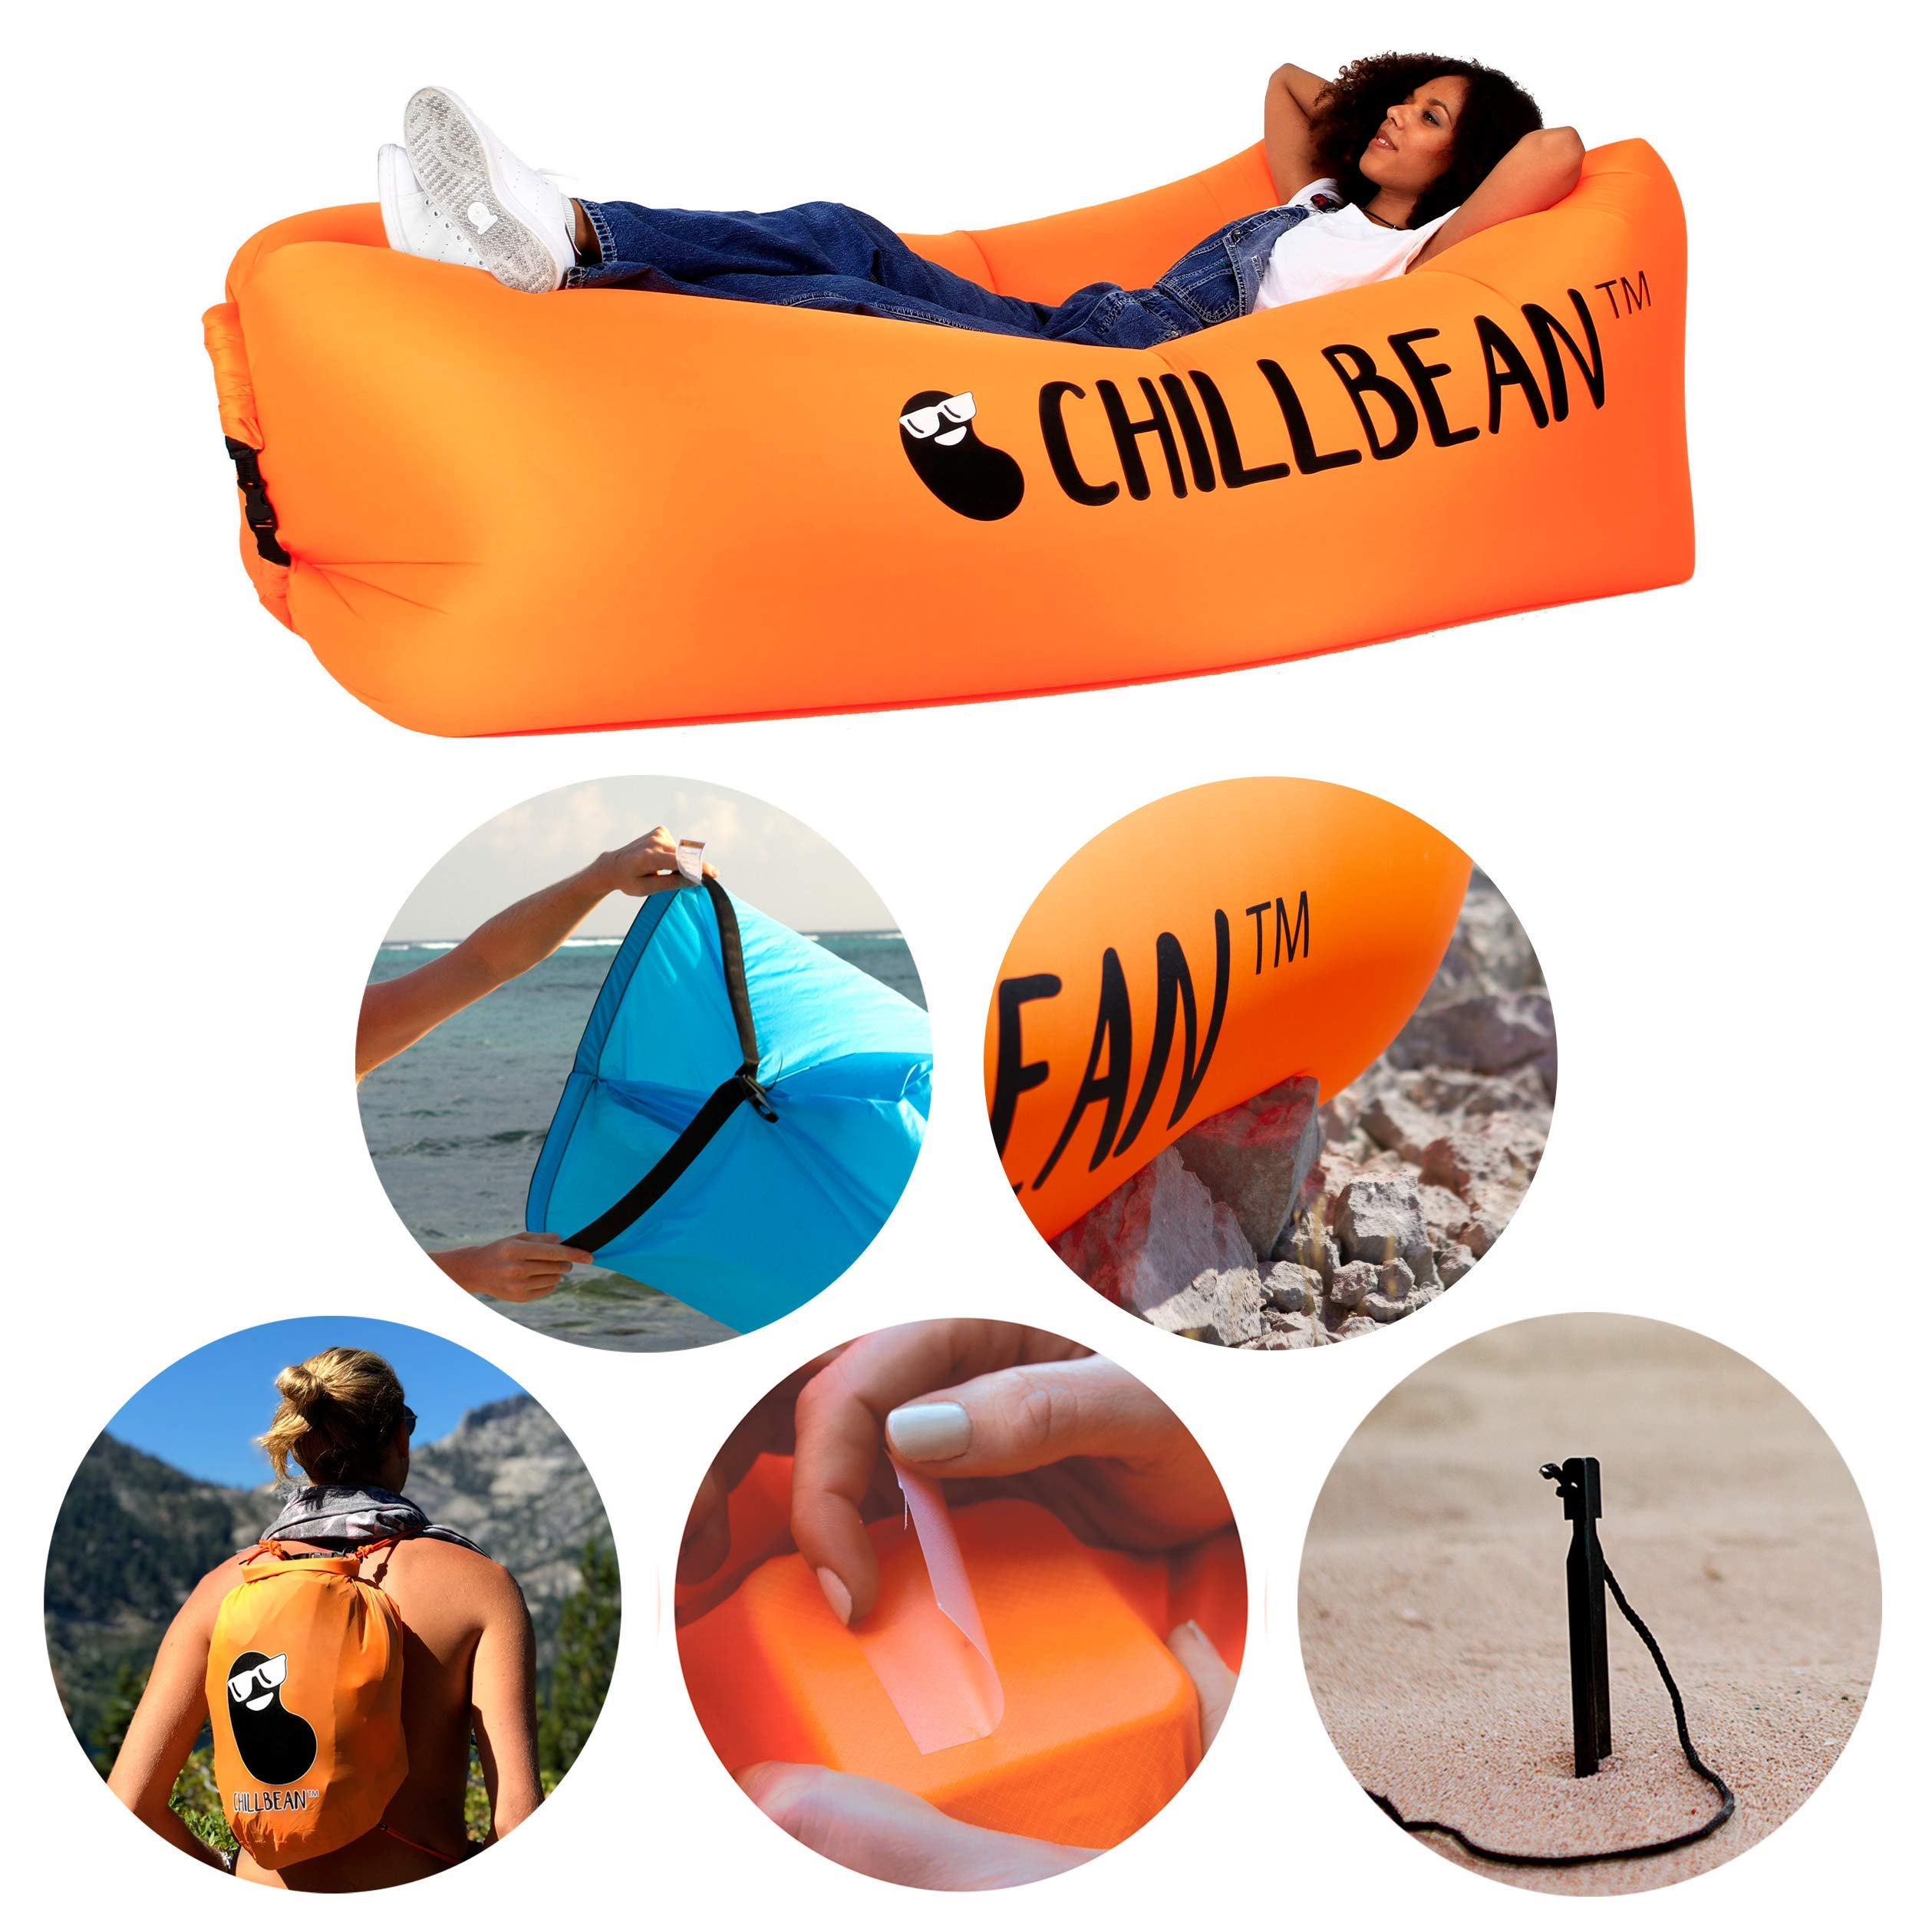 CHILLBEAN Inflatable Couch. Single Layer Single Opening 2.3 lbs Lightweight Portable Chaise Lounger. Comes with 2 Year Free Patches Warranty, Water Resistant Backpack, and Aluminium Wind Stake. by CHILLBEAN